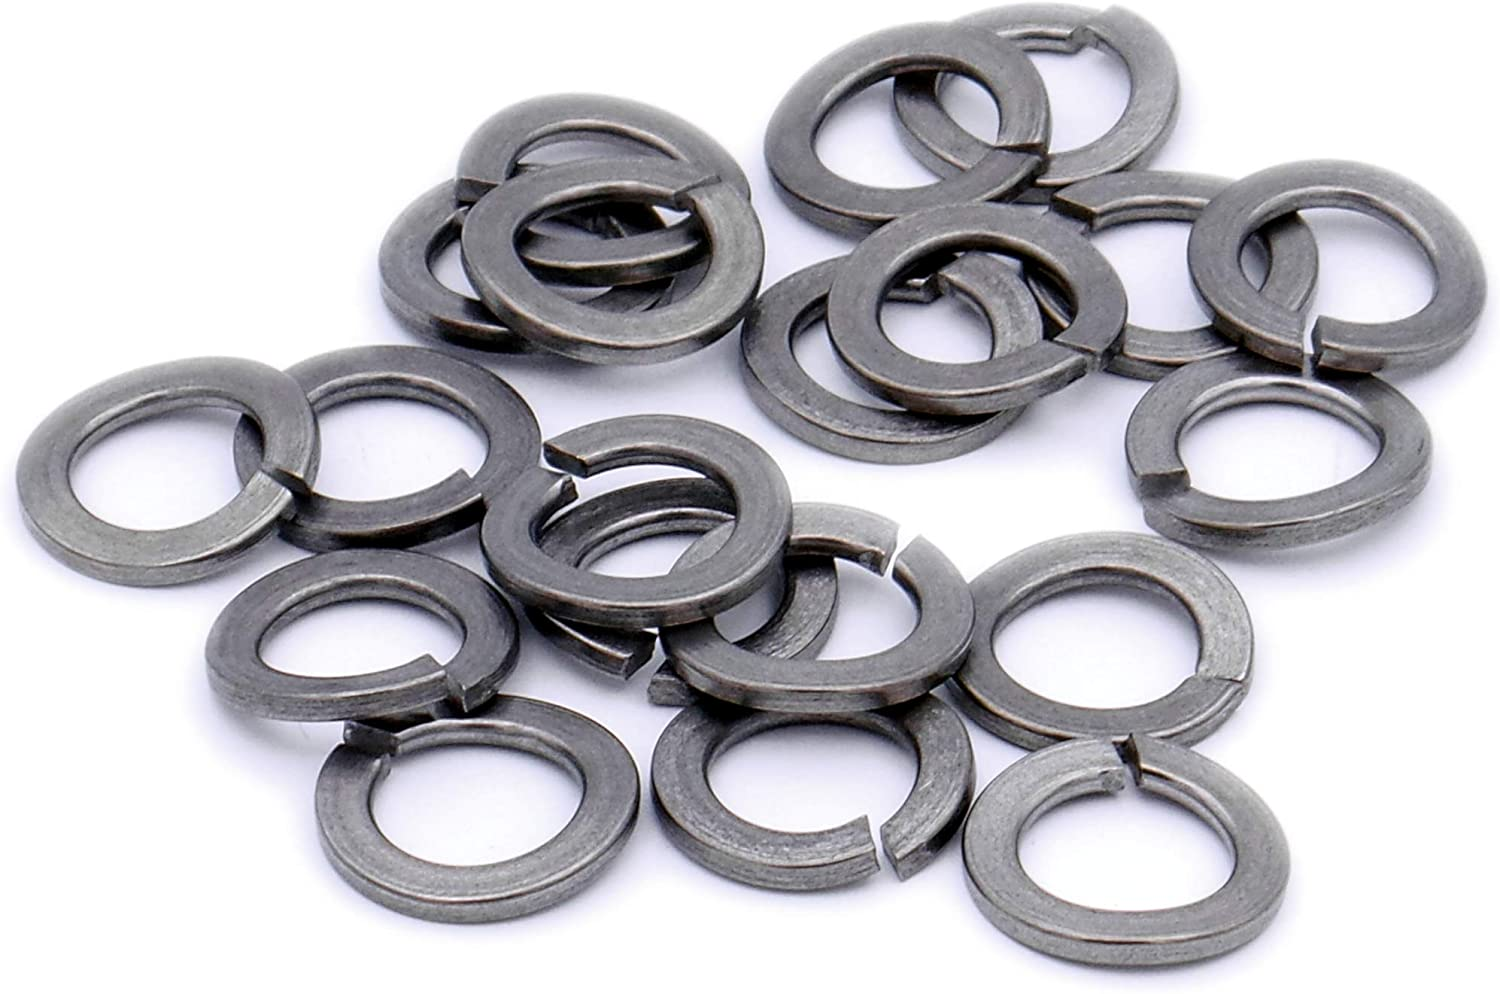 M2 A2 Pack of 20 Stainless Steel Wave Spring Split Lock Washer 2mm